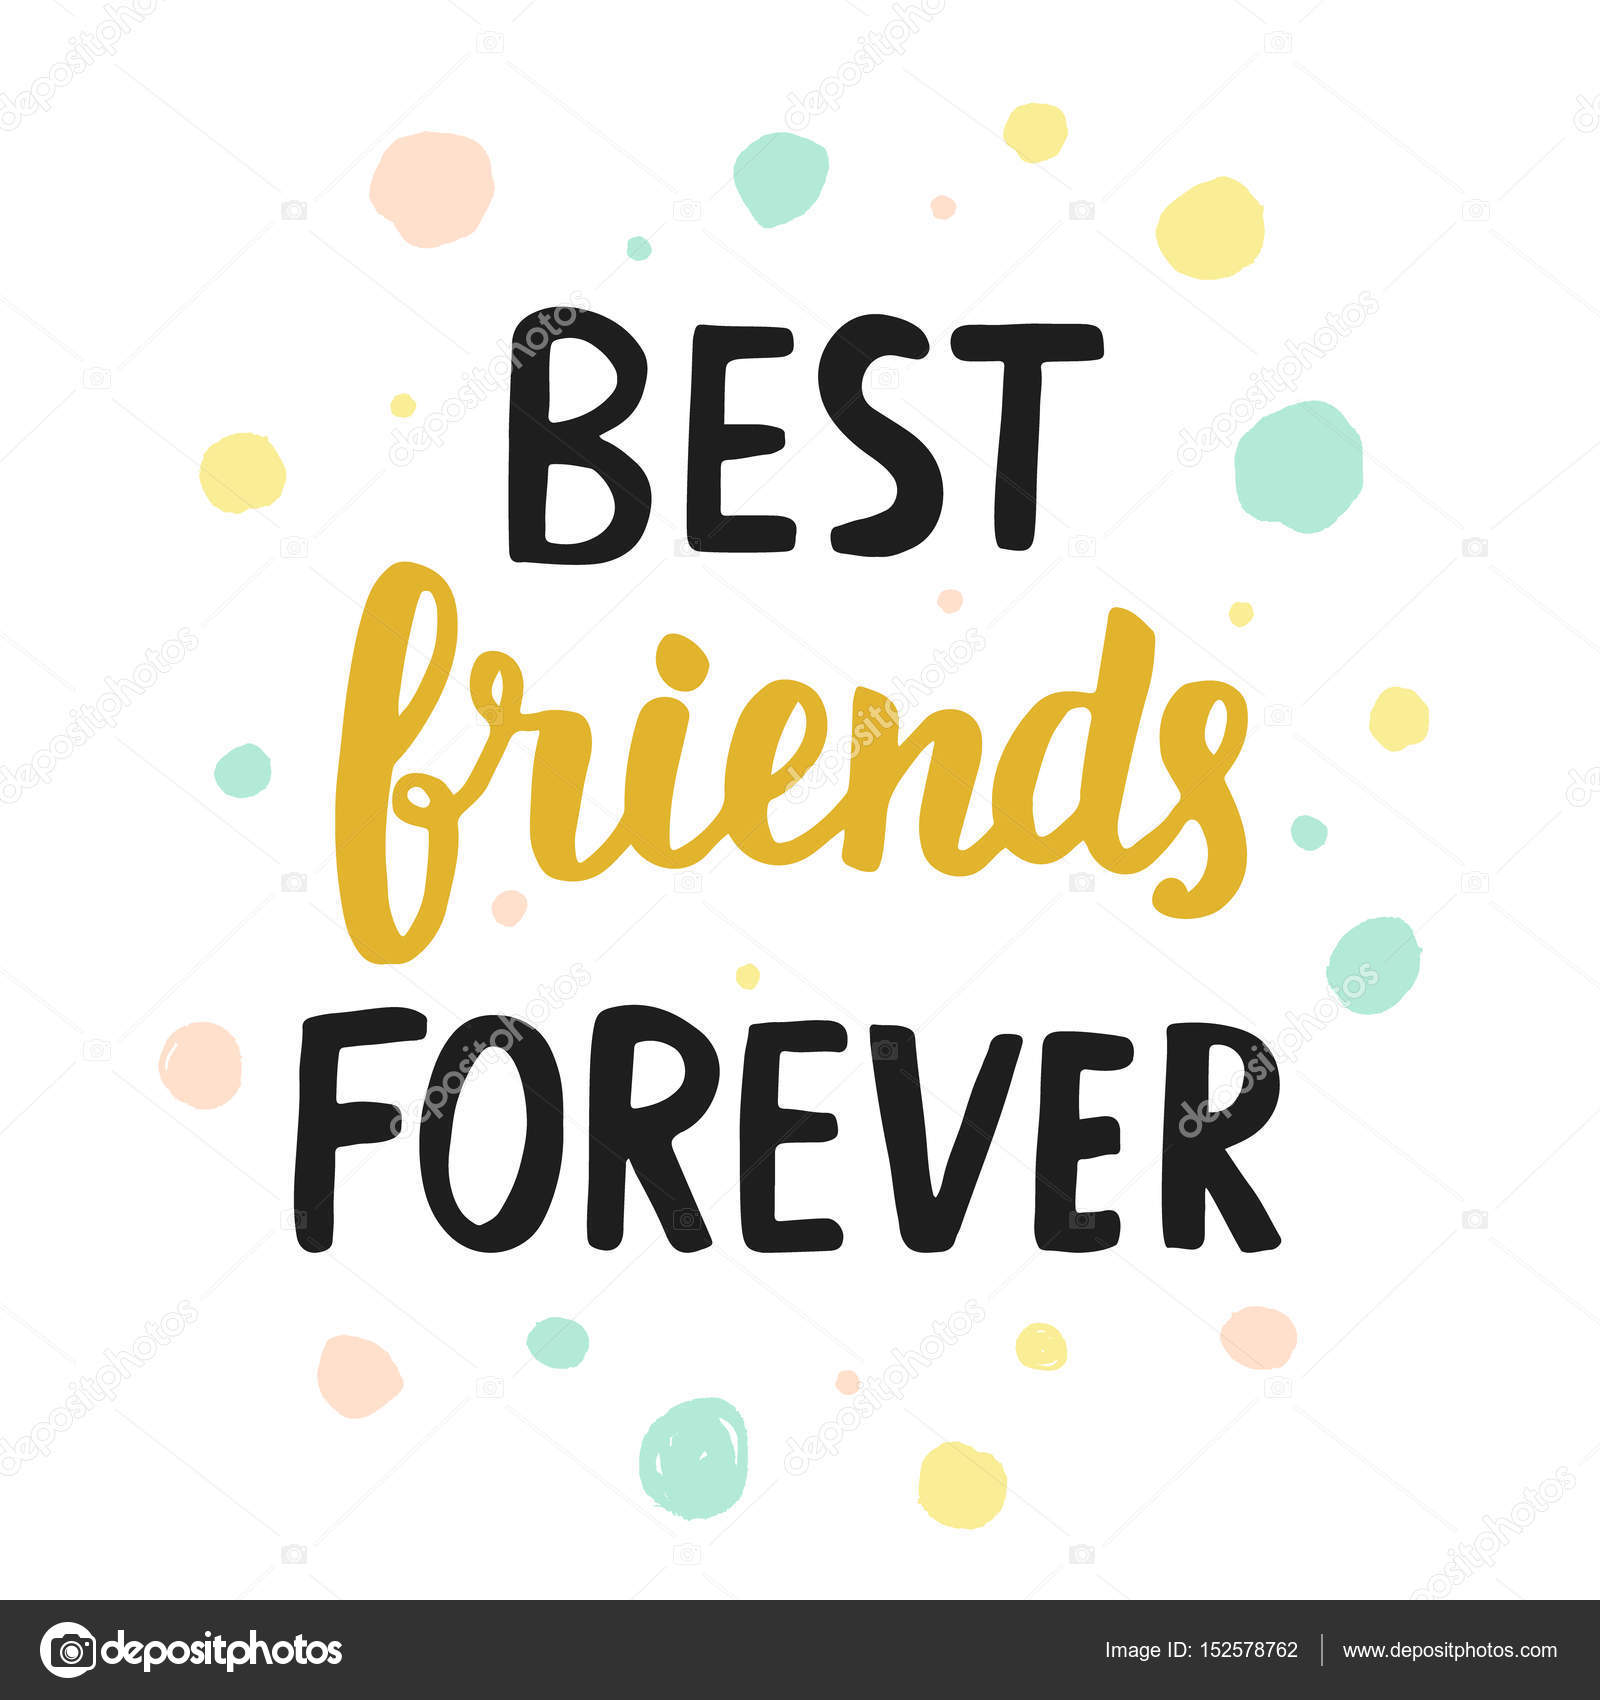 Best friends forever stock vector artrise 152578762 best friends forever quote modern hand written lettering in black and golden colors typographic design for greeting cards posters t shirt print m4hsunfo Images